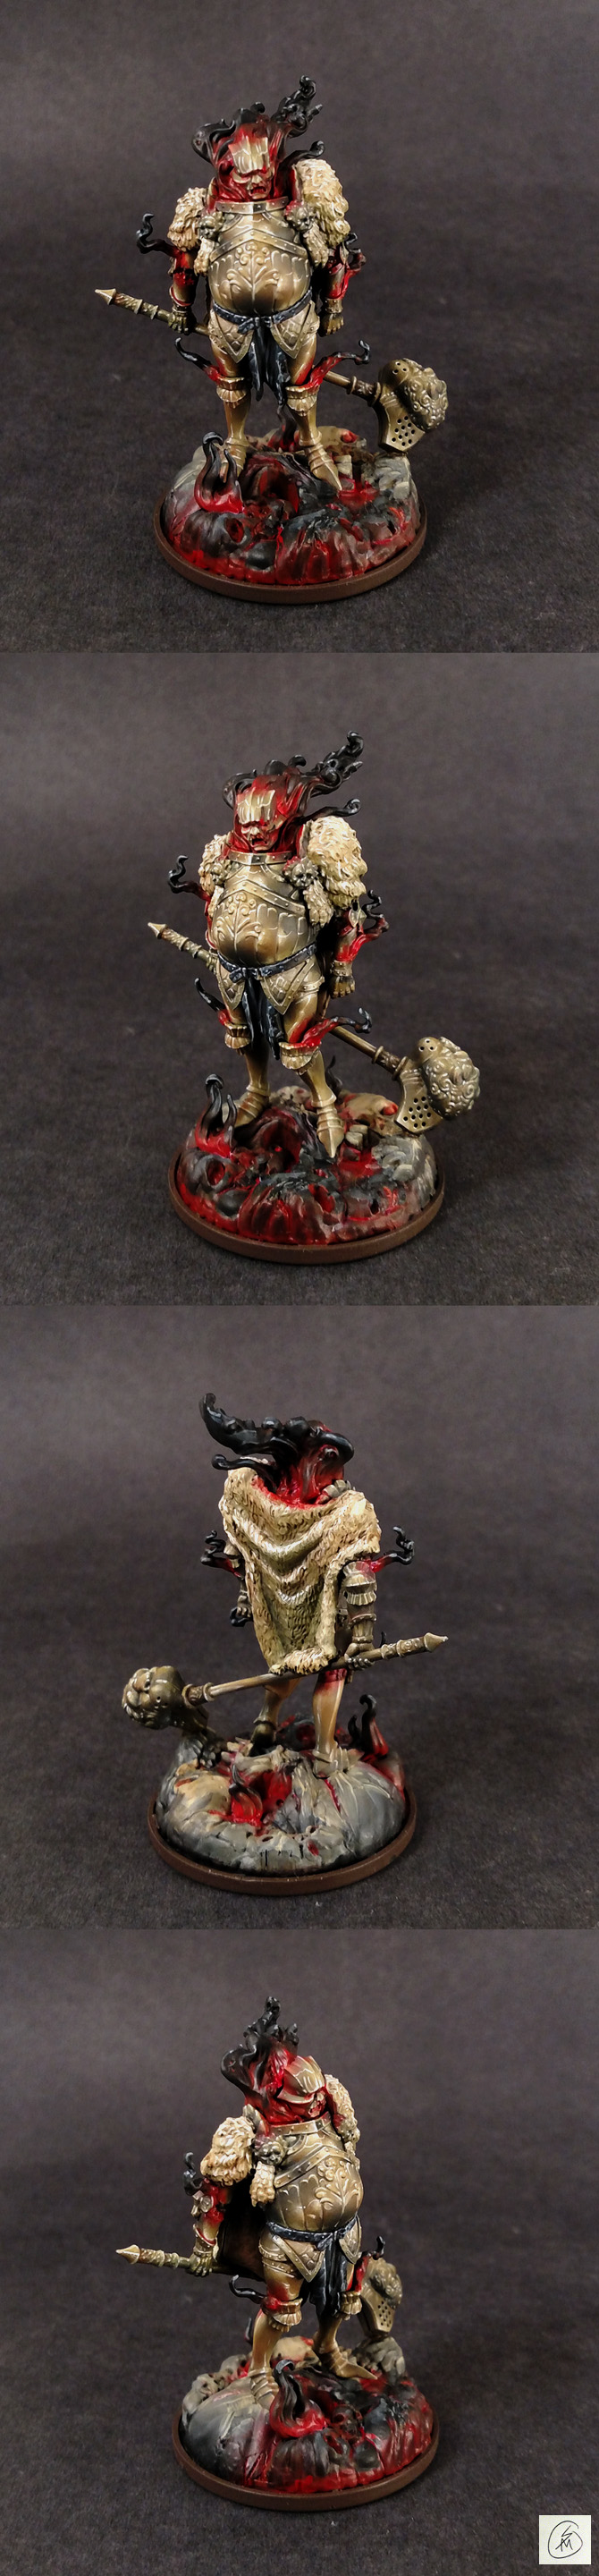 Kingdom Death, Gold Smoke Knight